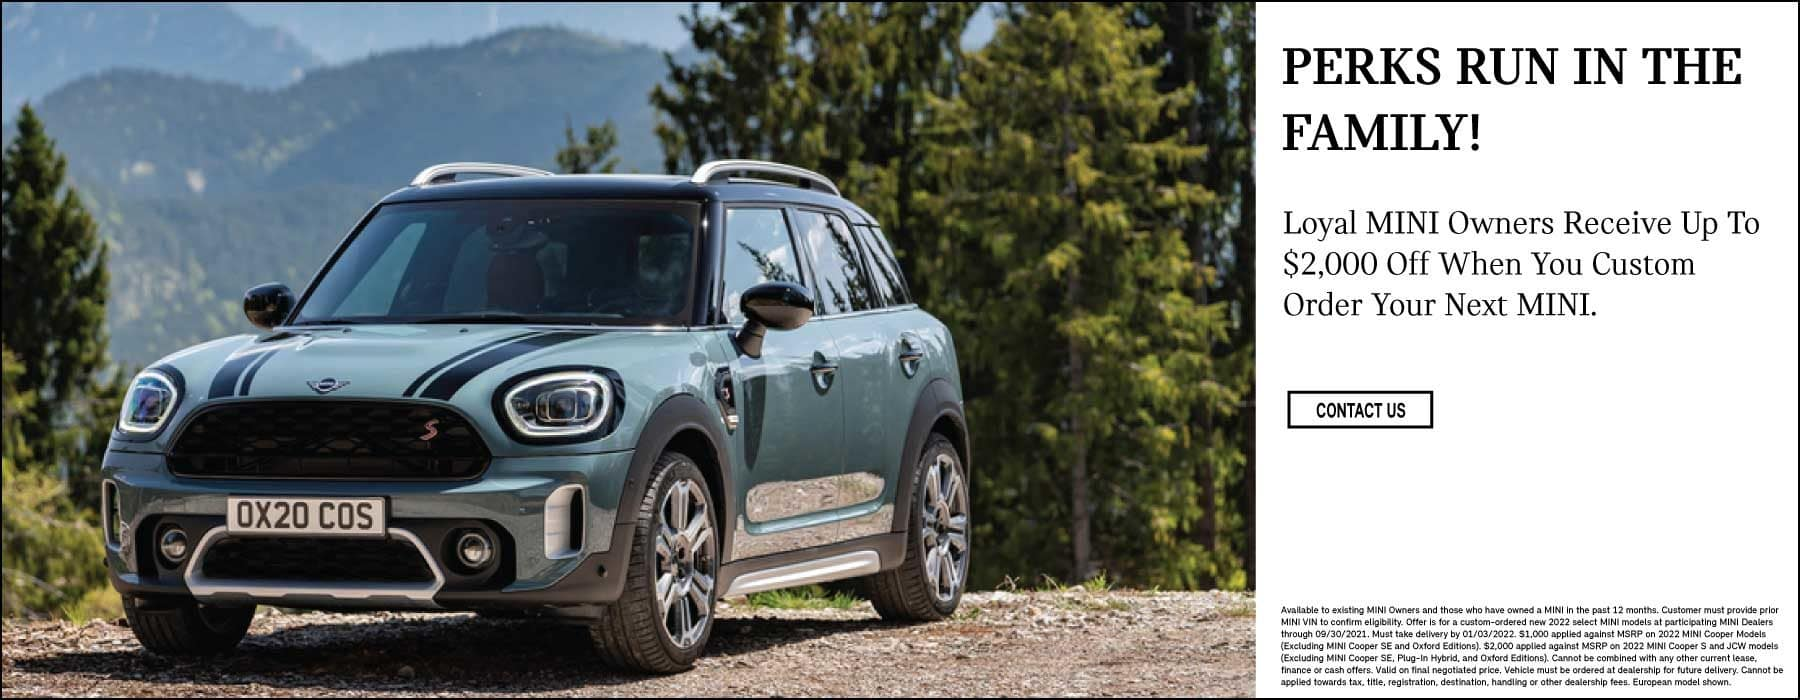 Loyal MINI Owners Recieve up to $2,000 off when pre-ordering their next MINI.